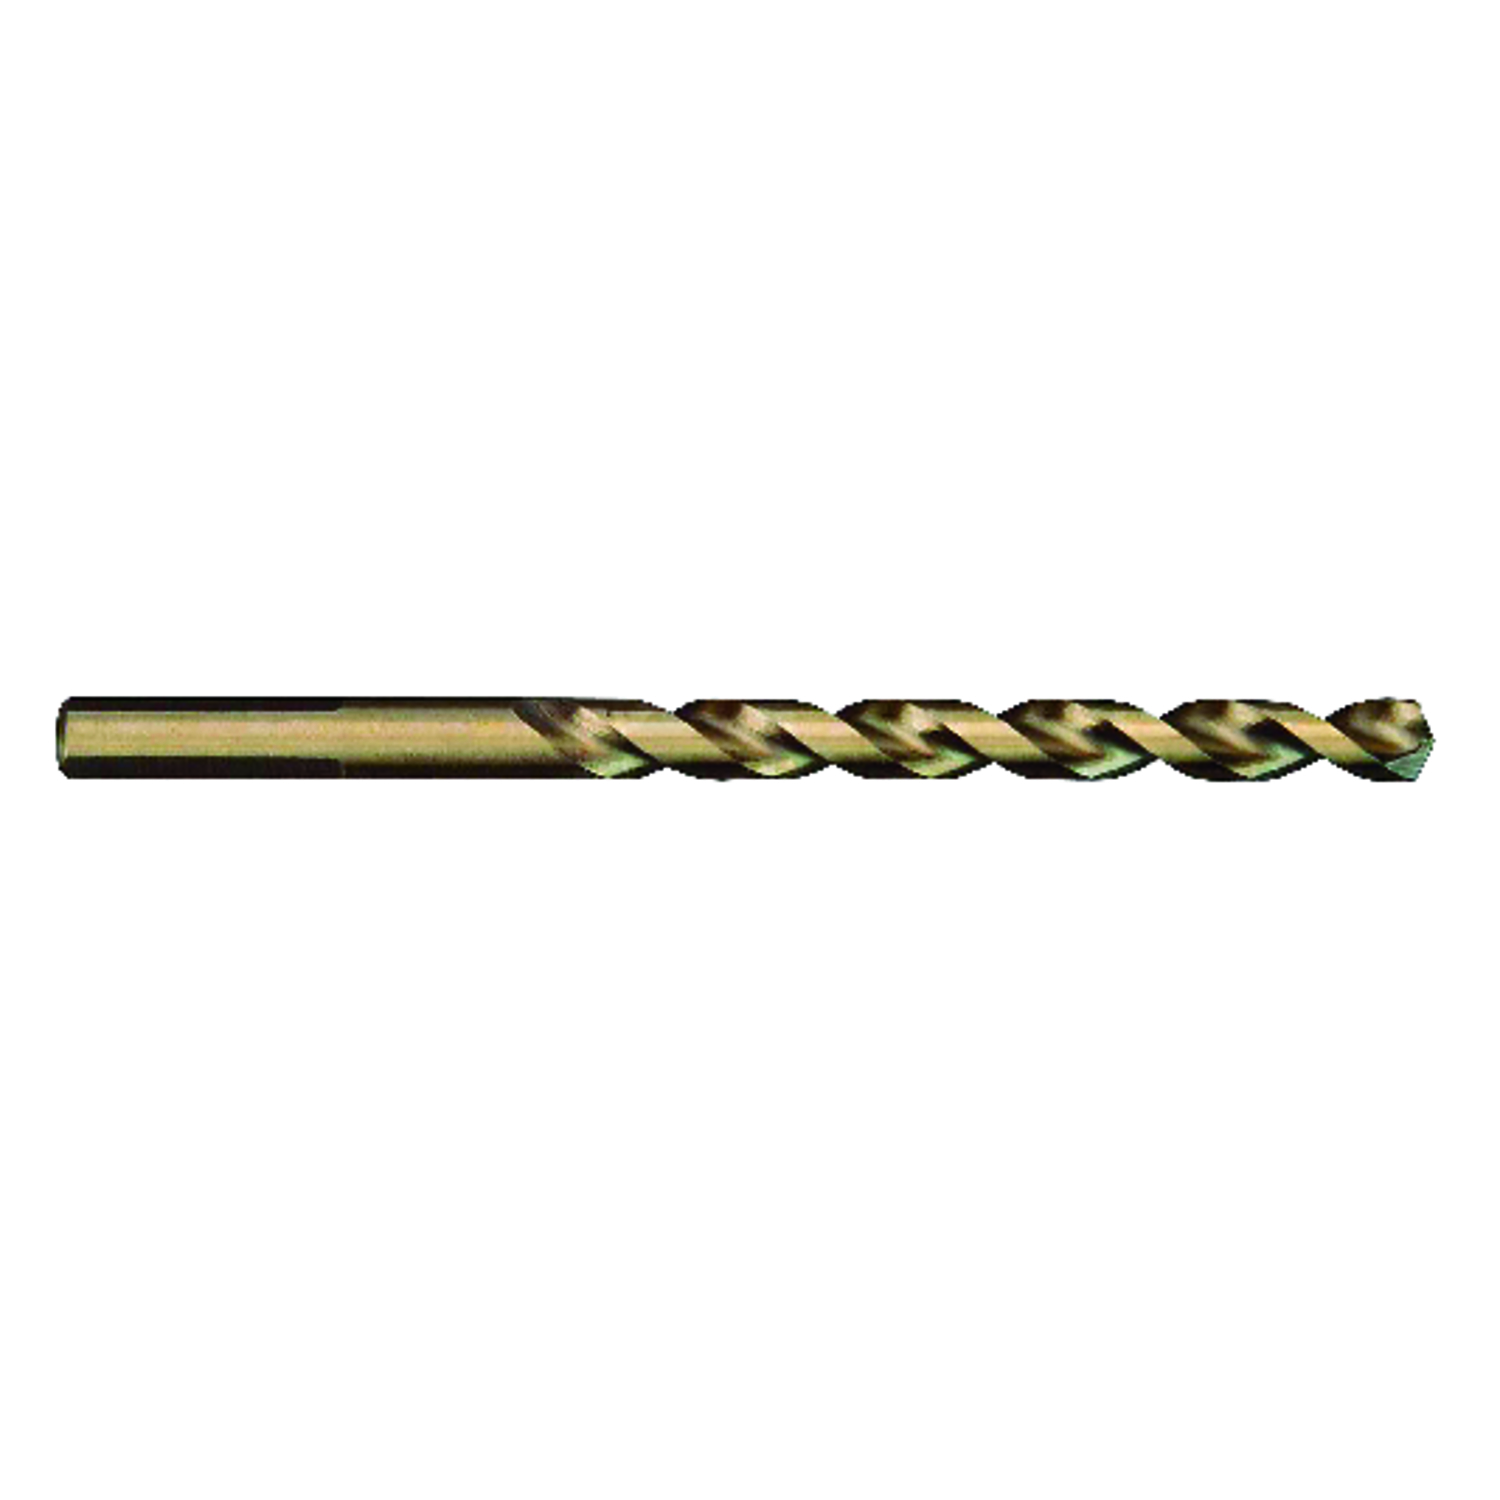 Milwaukee  RED HELIX  7/64 in. Dia. x 2-5/8 in. L Cobalt Steel  Drill Bit  Round Shank  1 pc. THUNDE